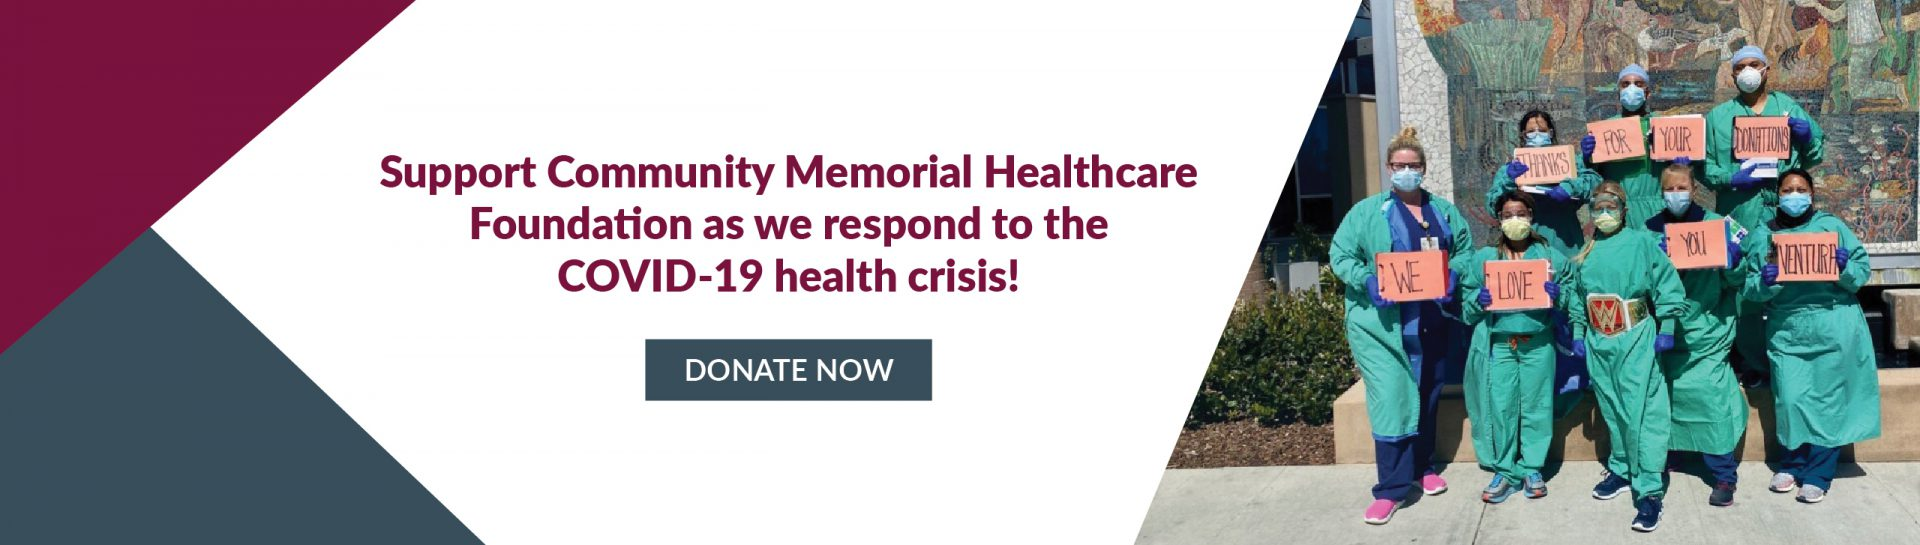 Support Community Memorial Healthcare Foundation as we respond to the COVID-19 health crisis! Donate Now